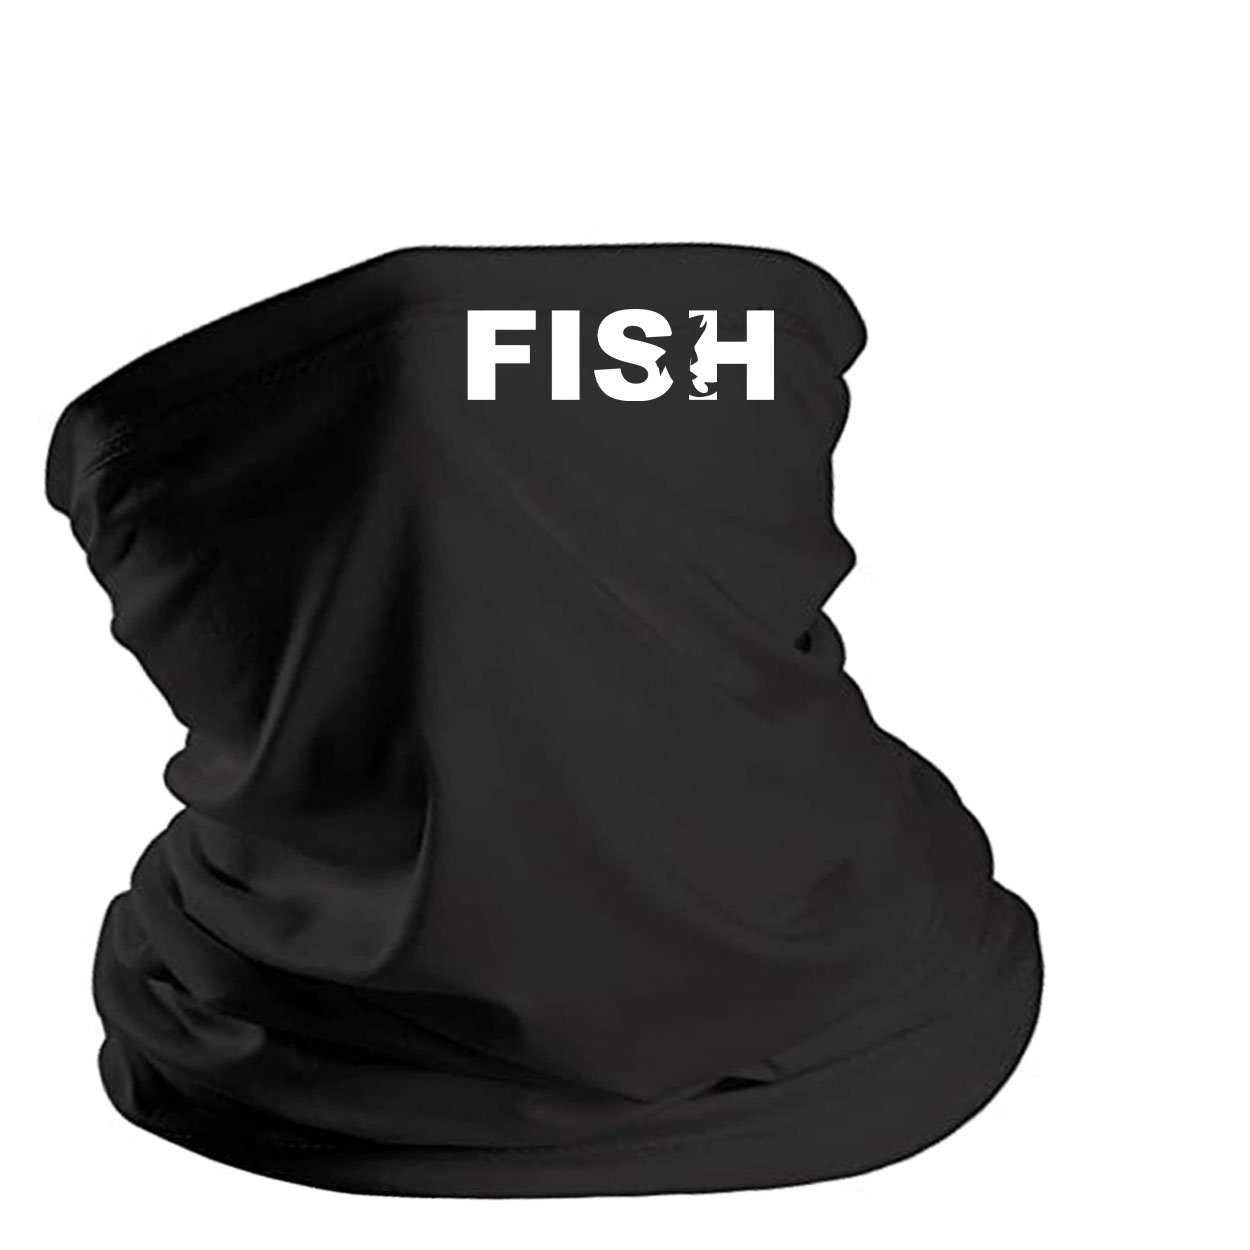 Fish Catch Logo Night Out Lightweight Neck Gaiter Face Mask Black (White Logo)